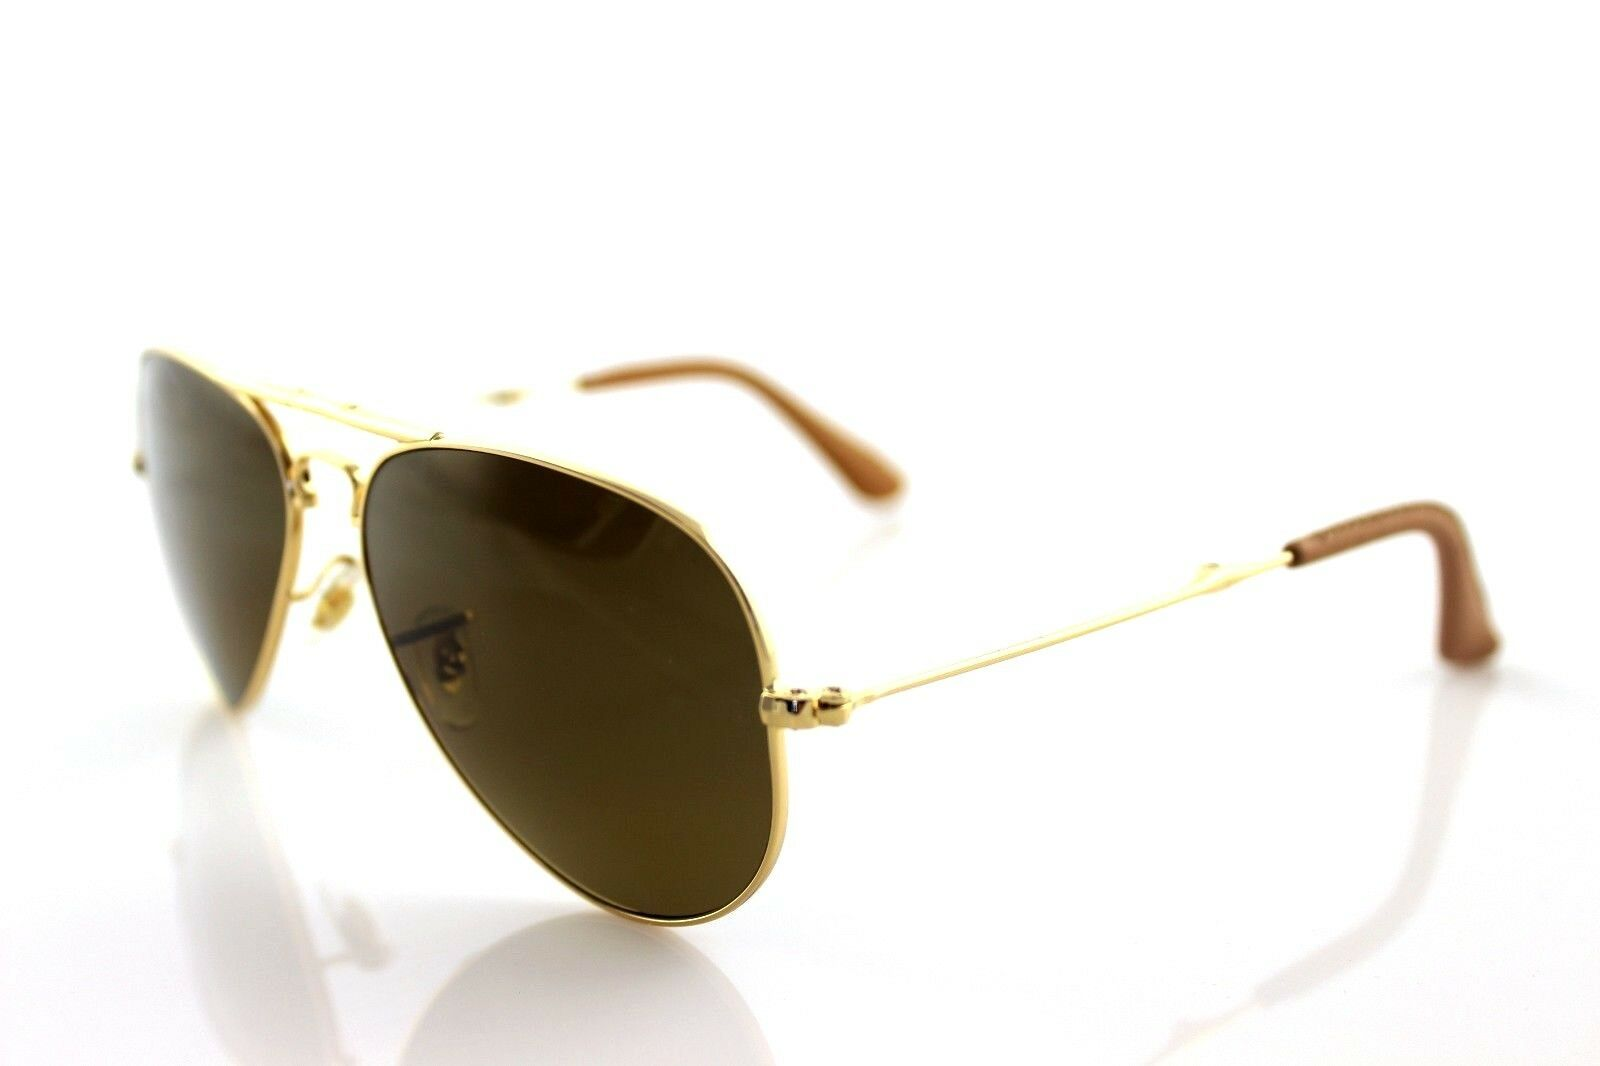 78bbe71c58  800 RAY-BAN 22KT GOLD PLATED Folding AVIATOR Sunglasses RB 3479KQ 001 M7  3025